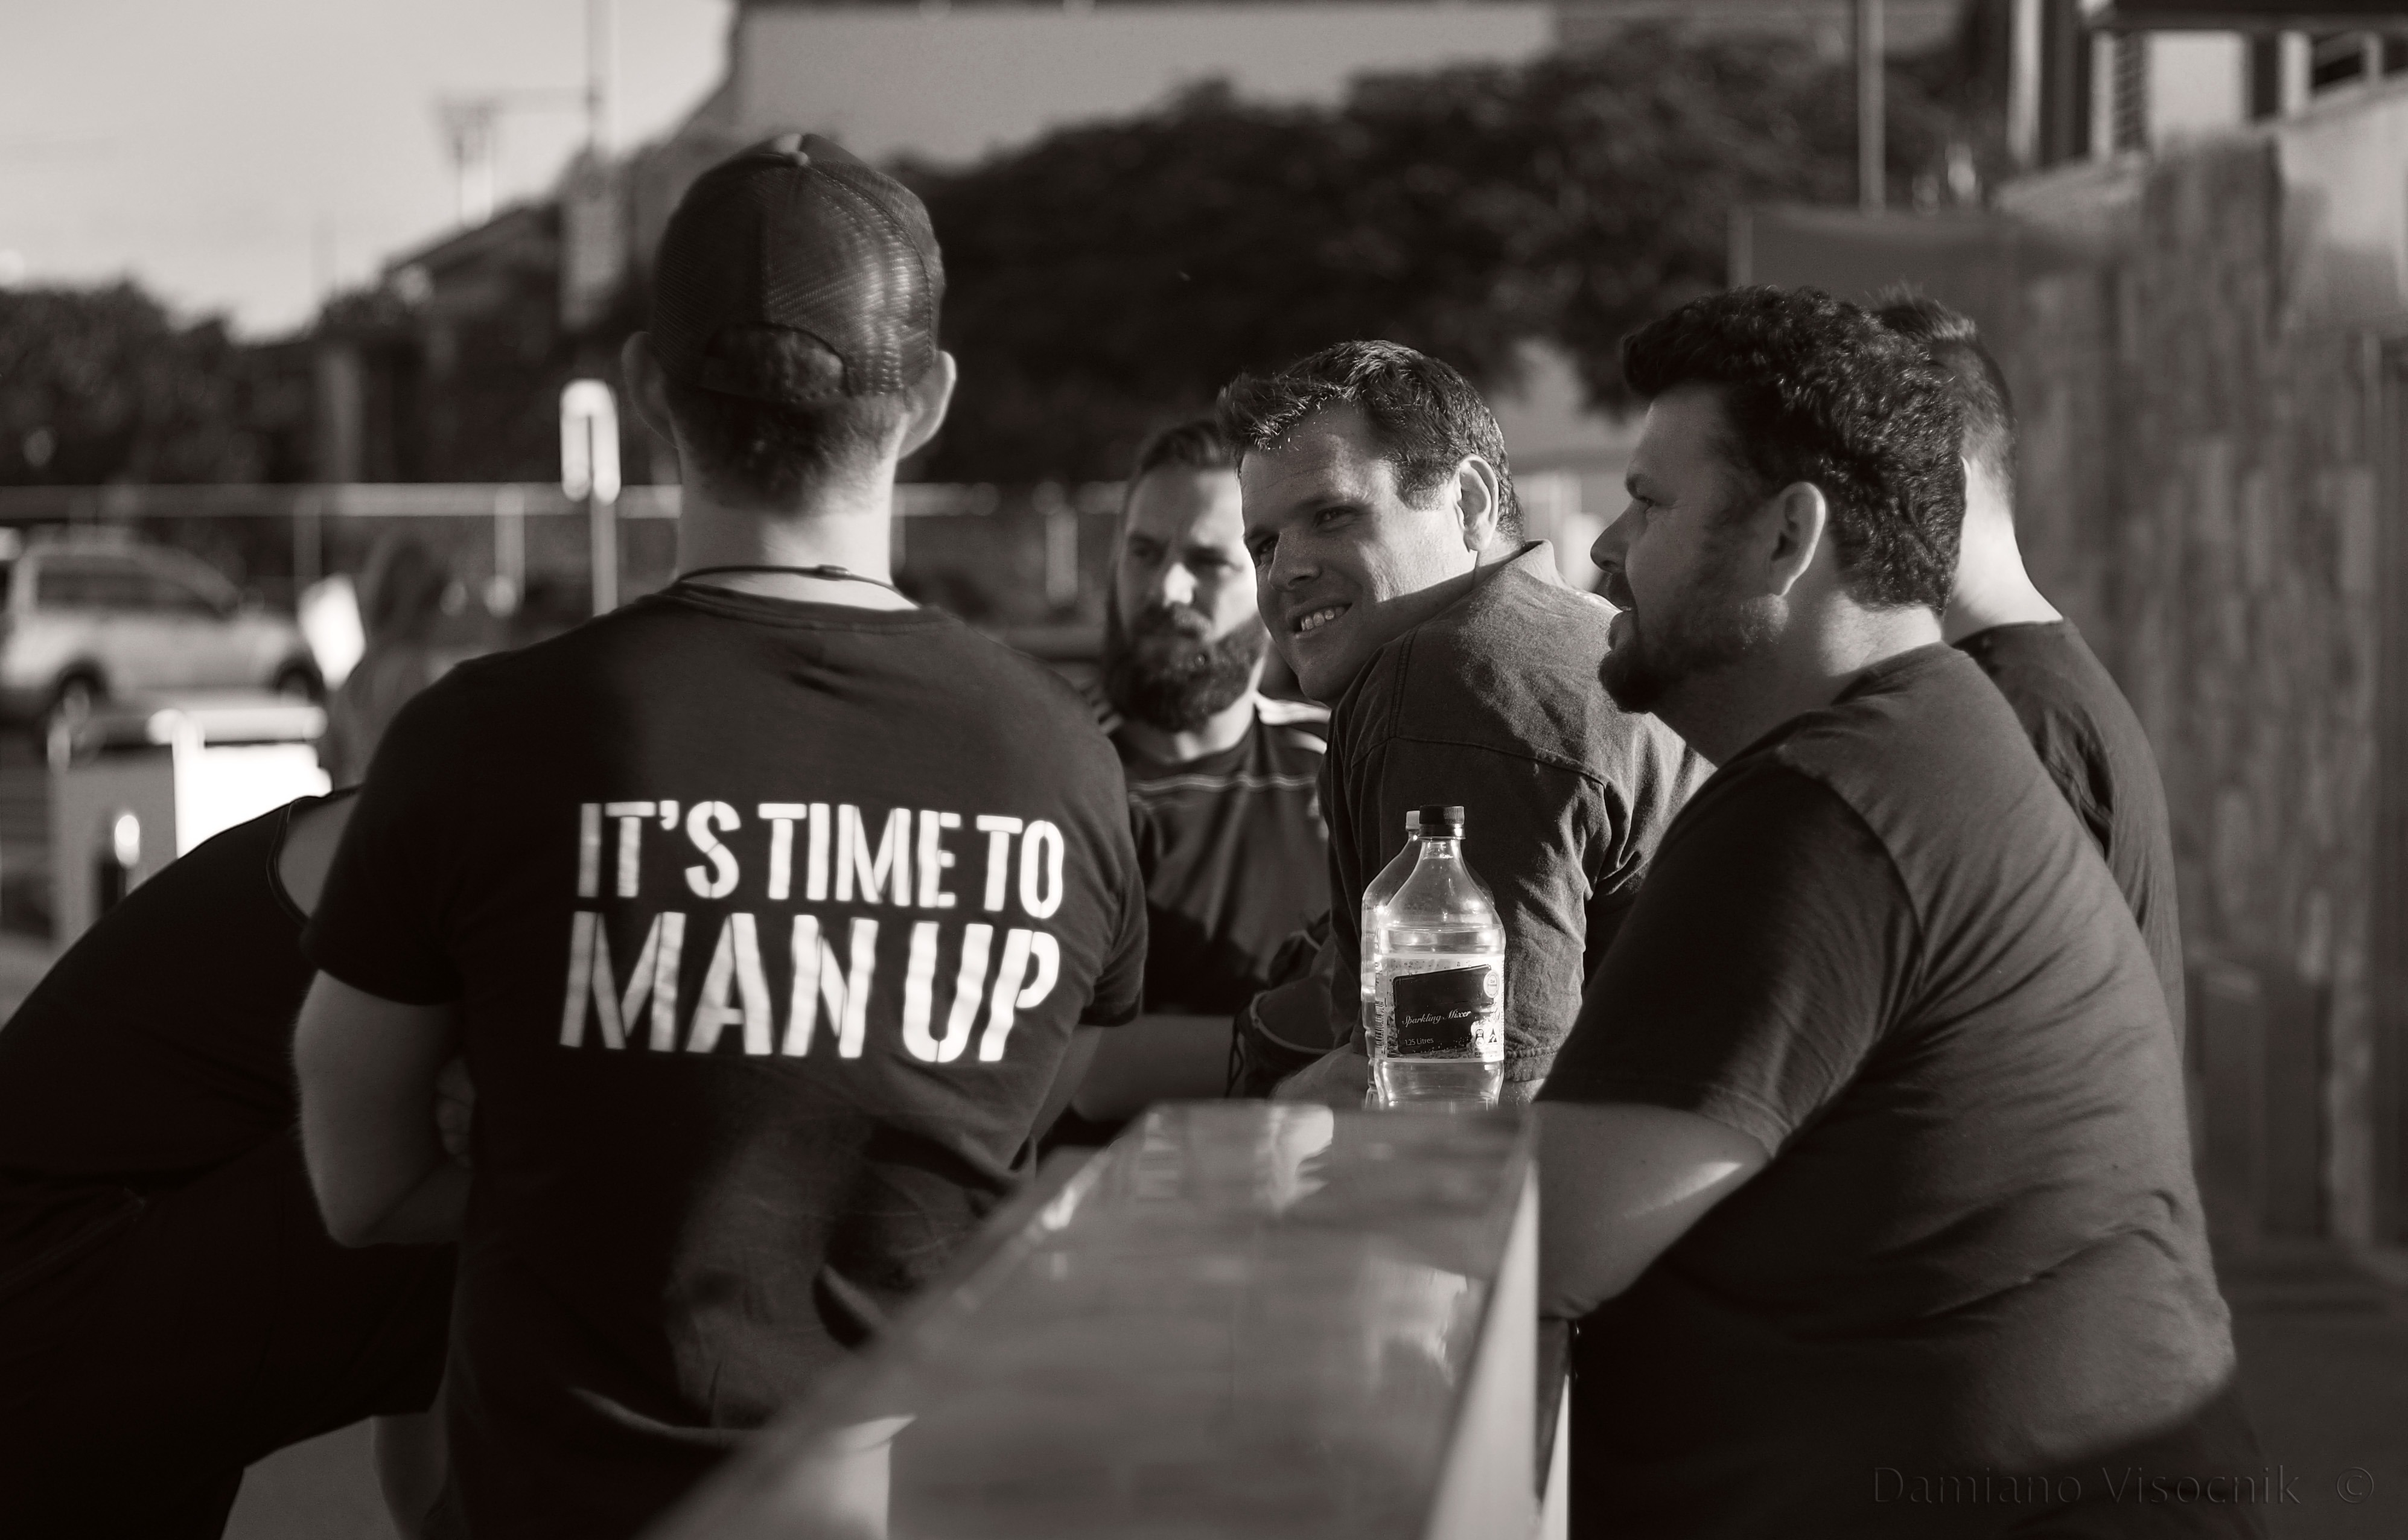 Man up_bw_c